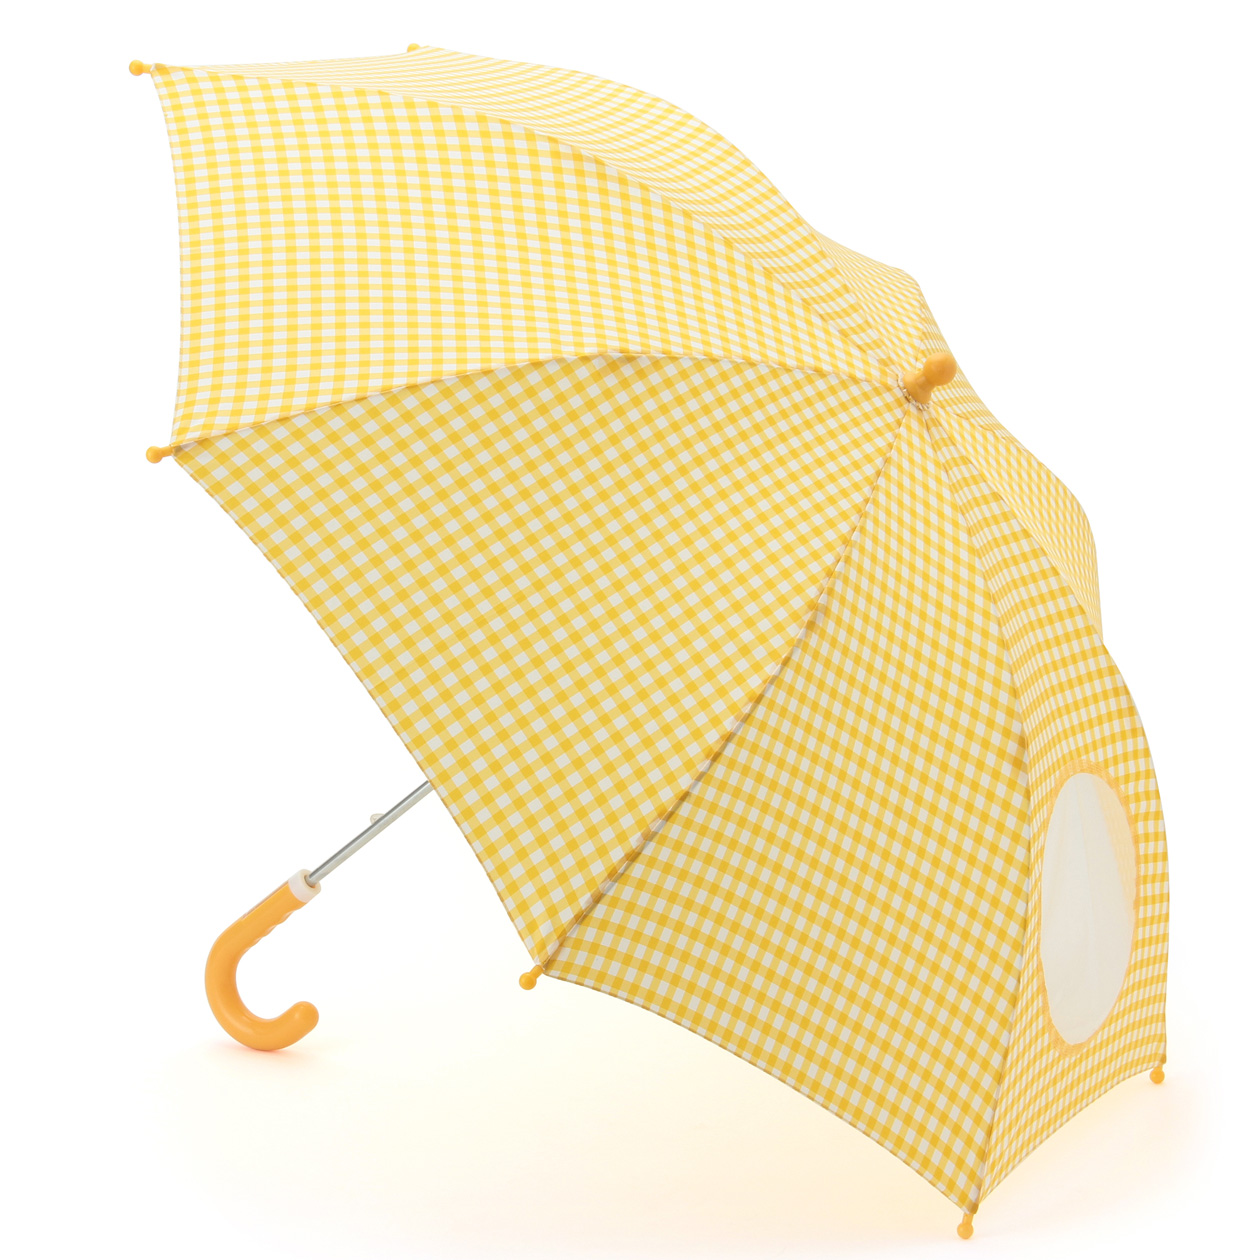 POLYESTER UMBRELLA WITH WINDOW/NAME TAG